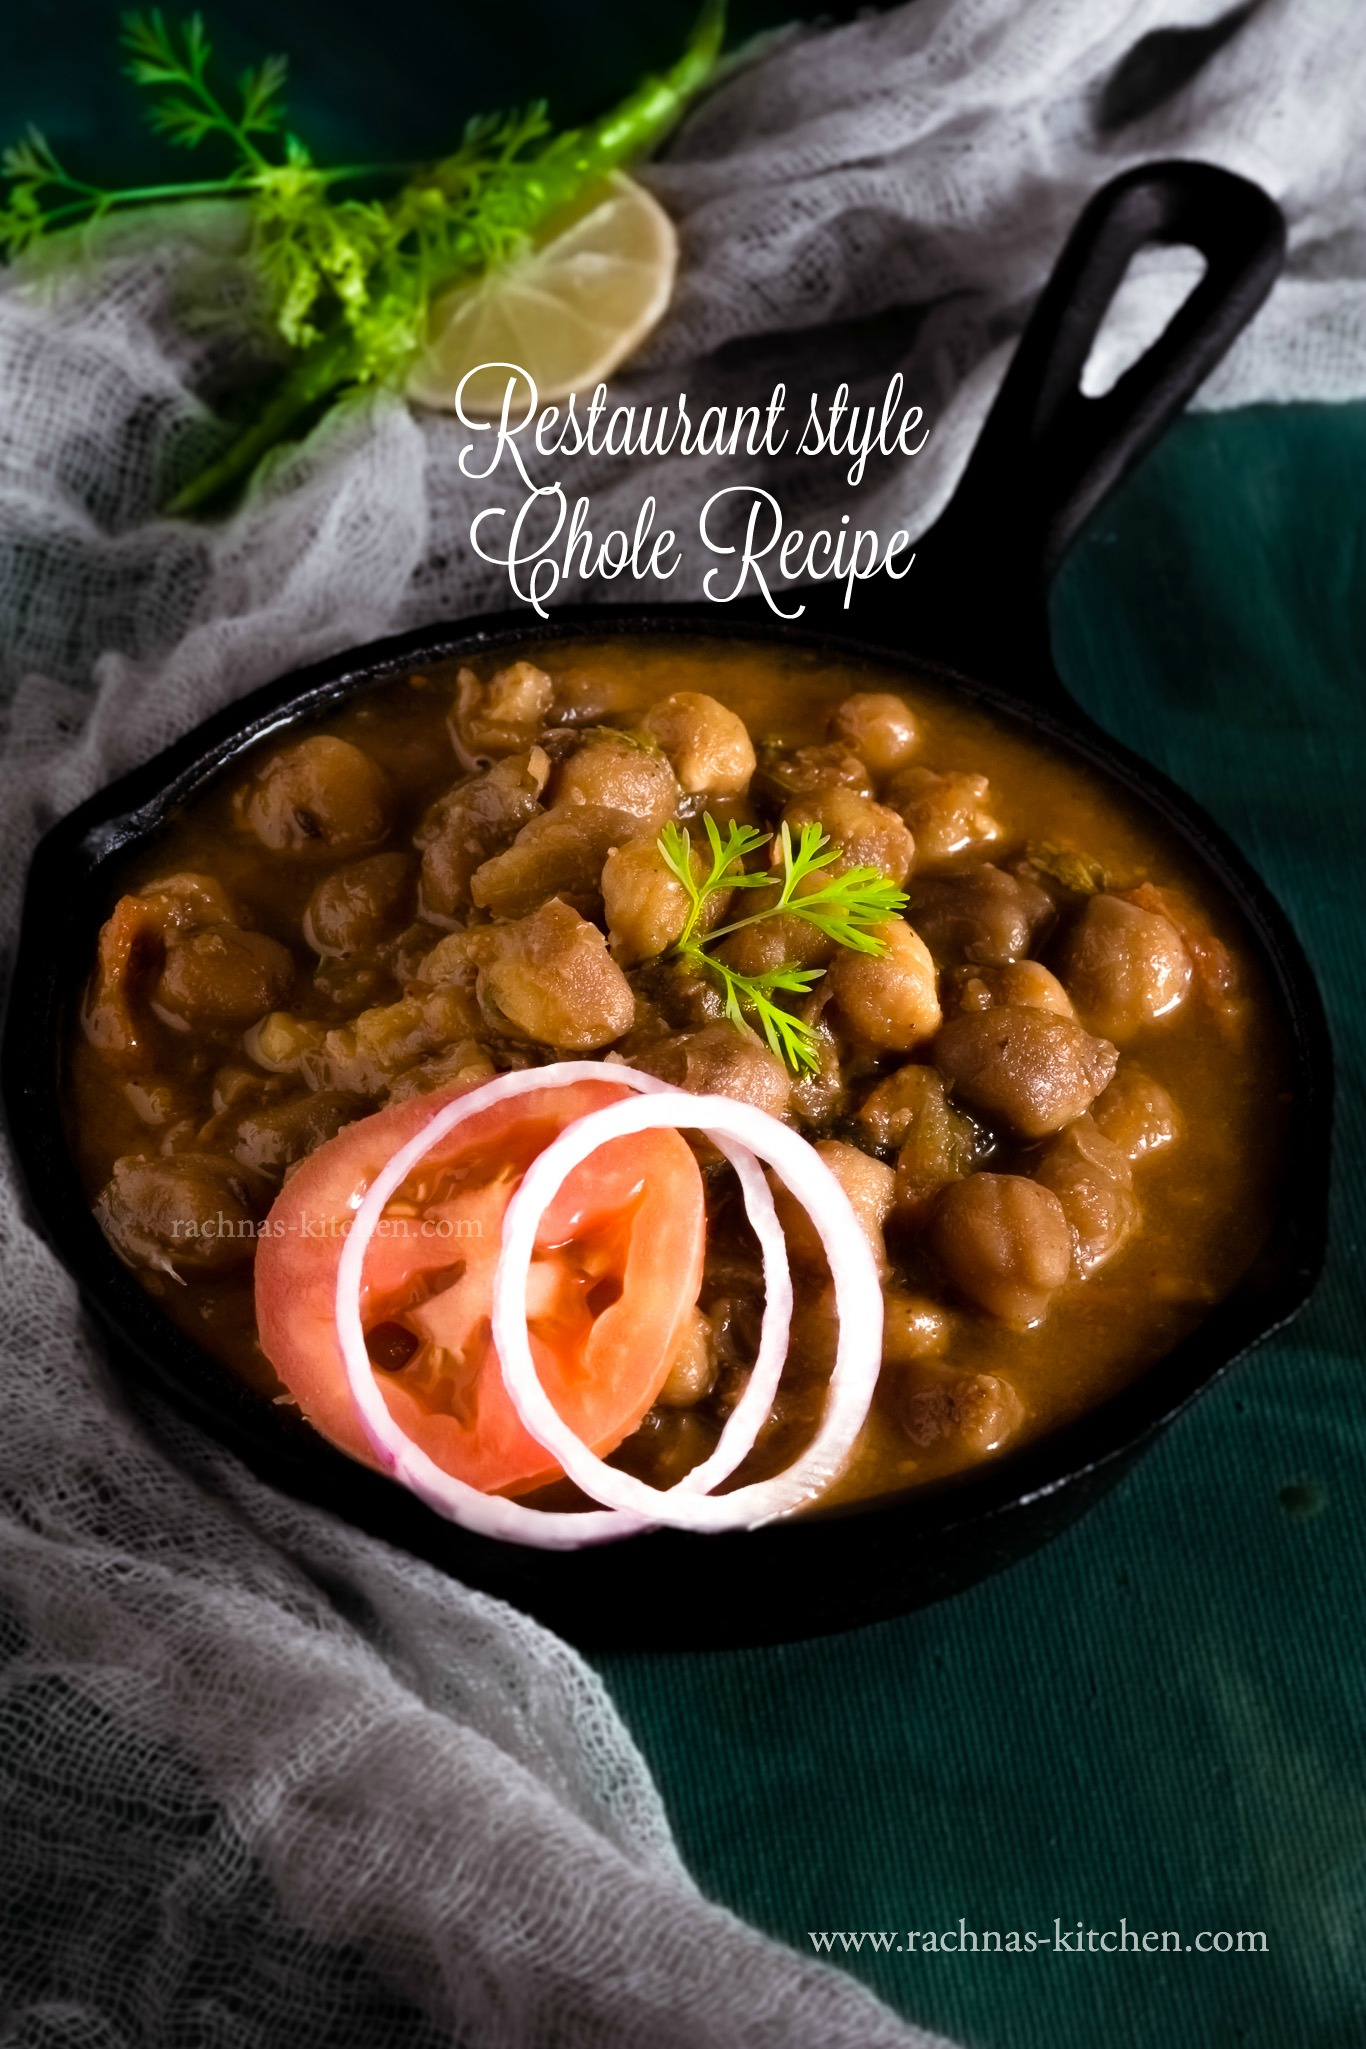 Chole recipe punjabi chole bhatura recipe chole recipe forumfinder Choice Image